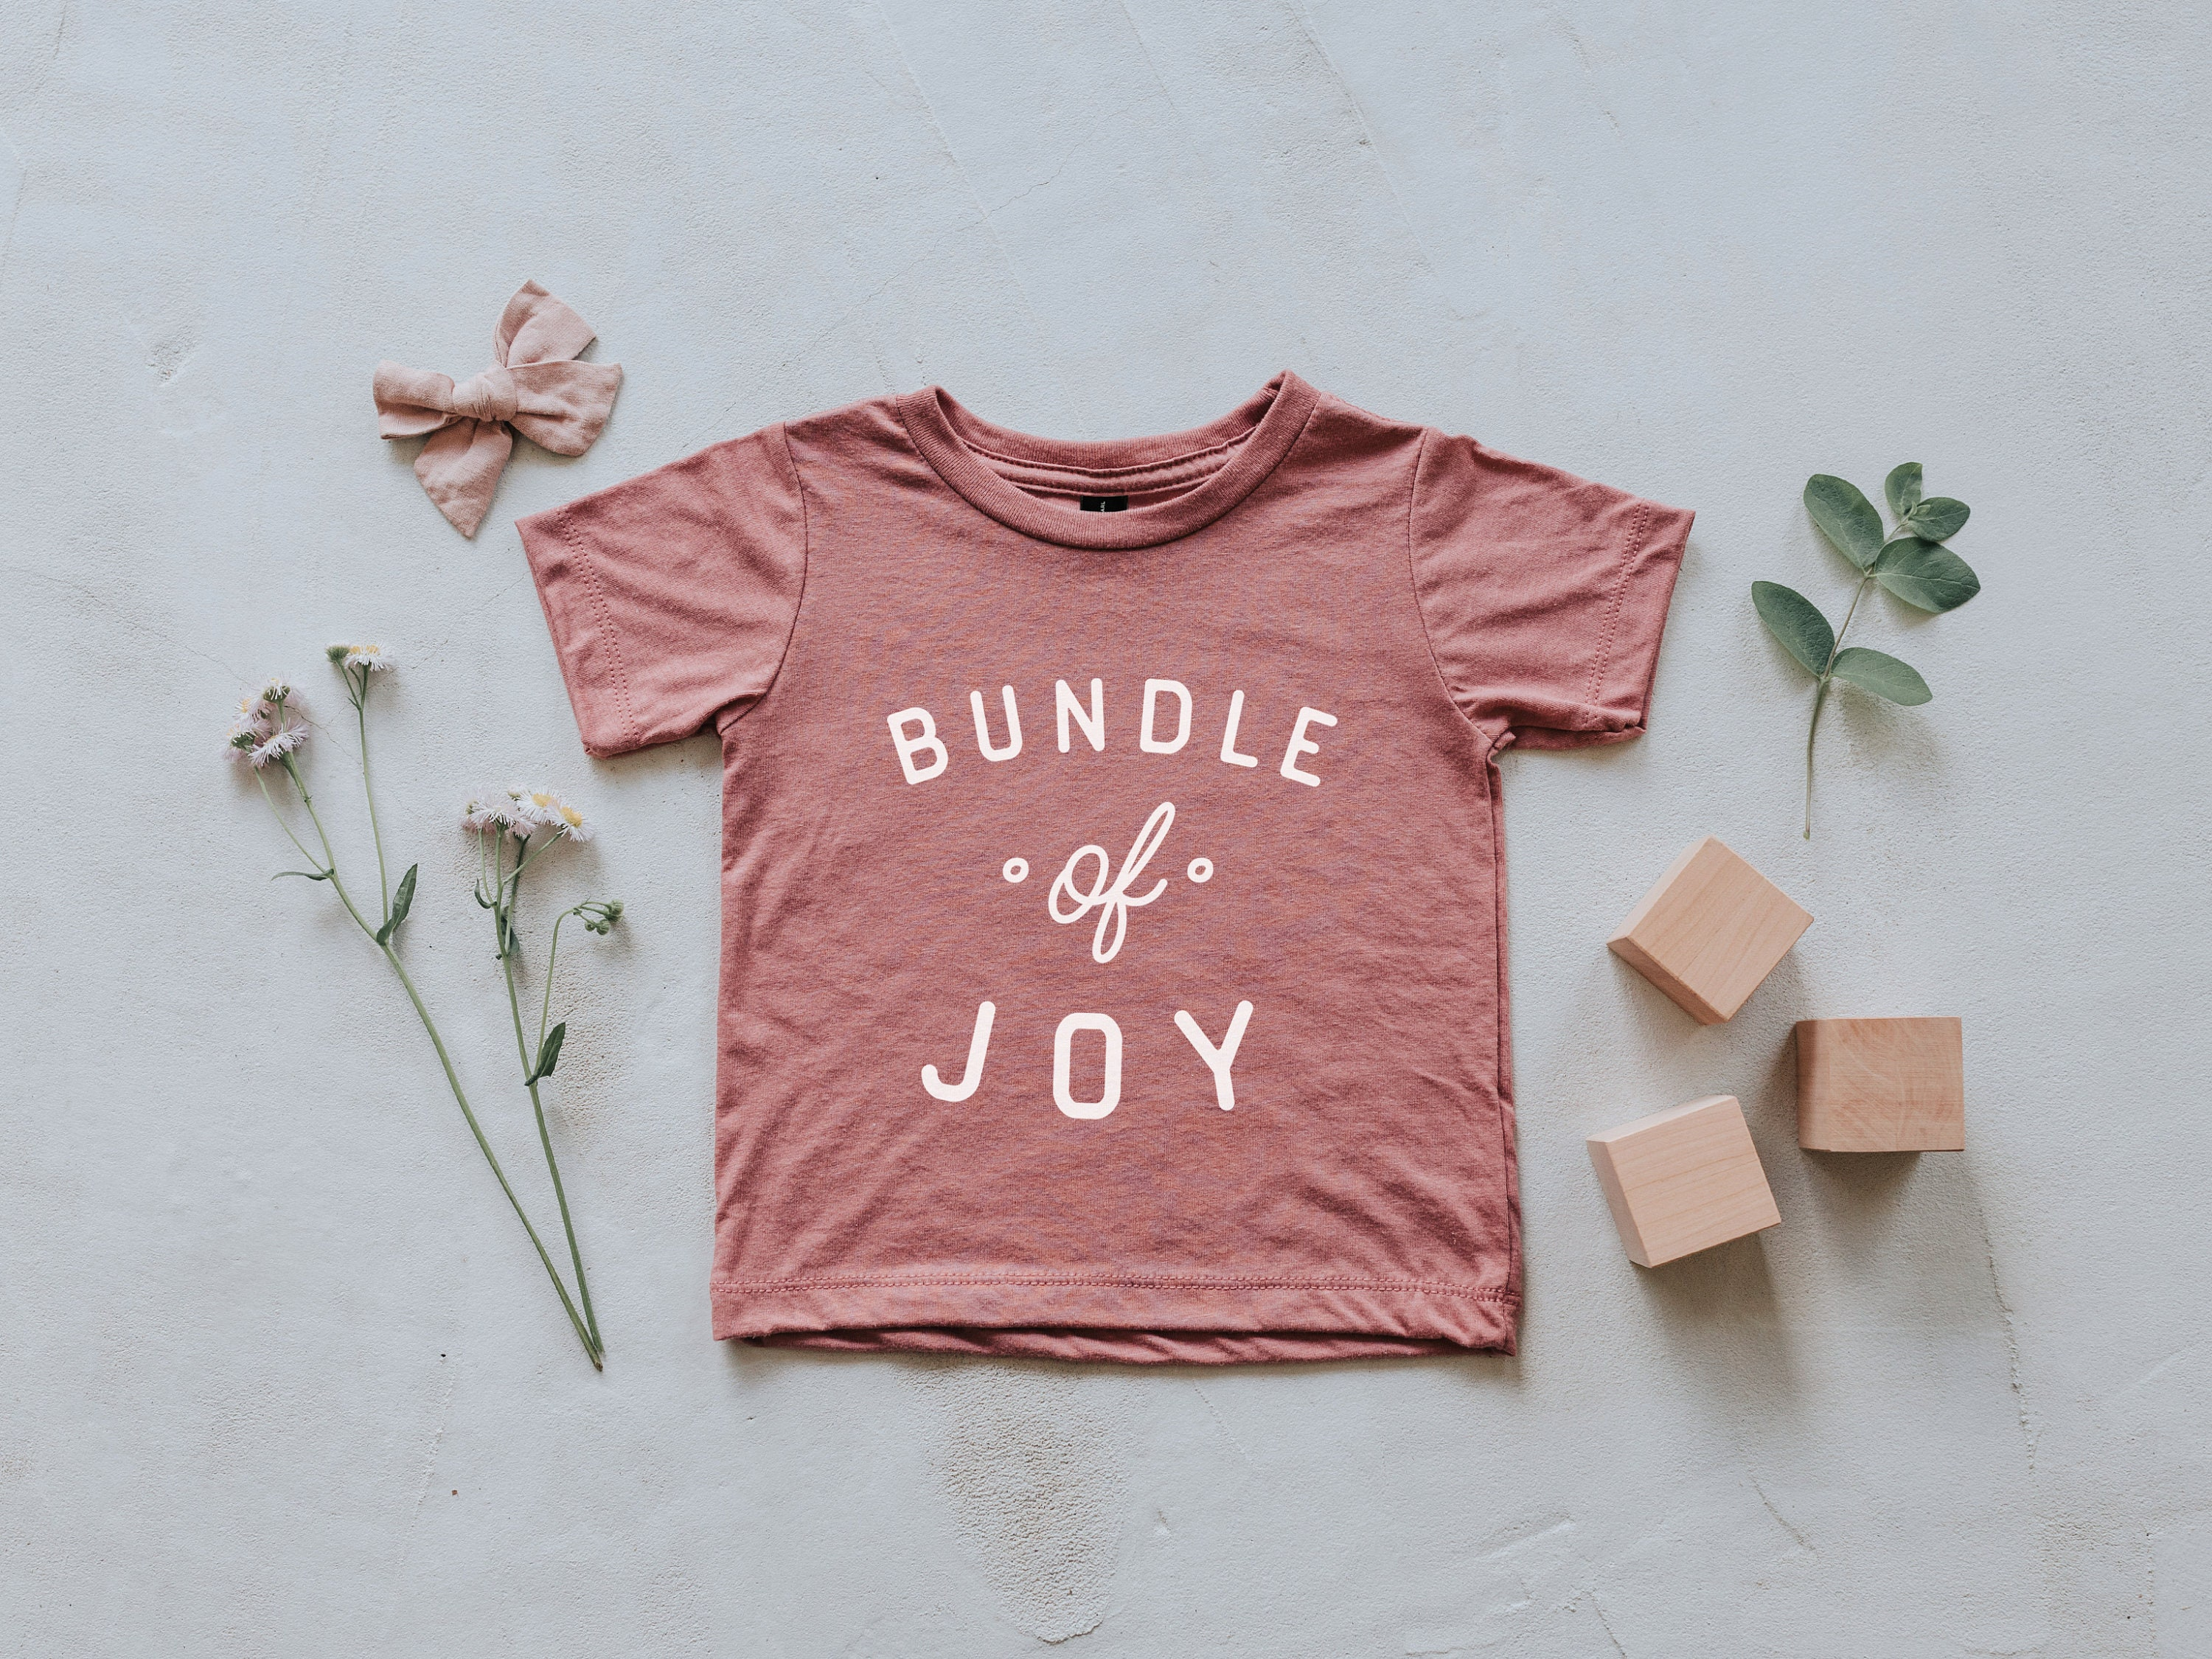 768703766cbe0 Bundle Of Joy Mauve Baby & Kids T-Shirt • Modern Mauve Pink and White  Typographic Tee for Trendy Babies and Little Girls • FREE SHIPPING